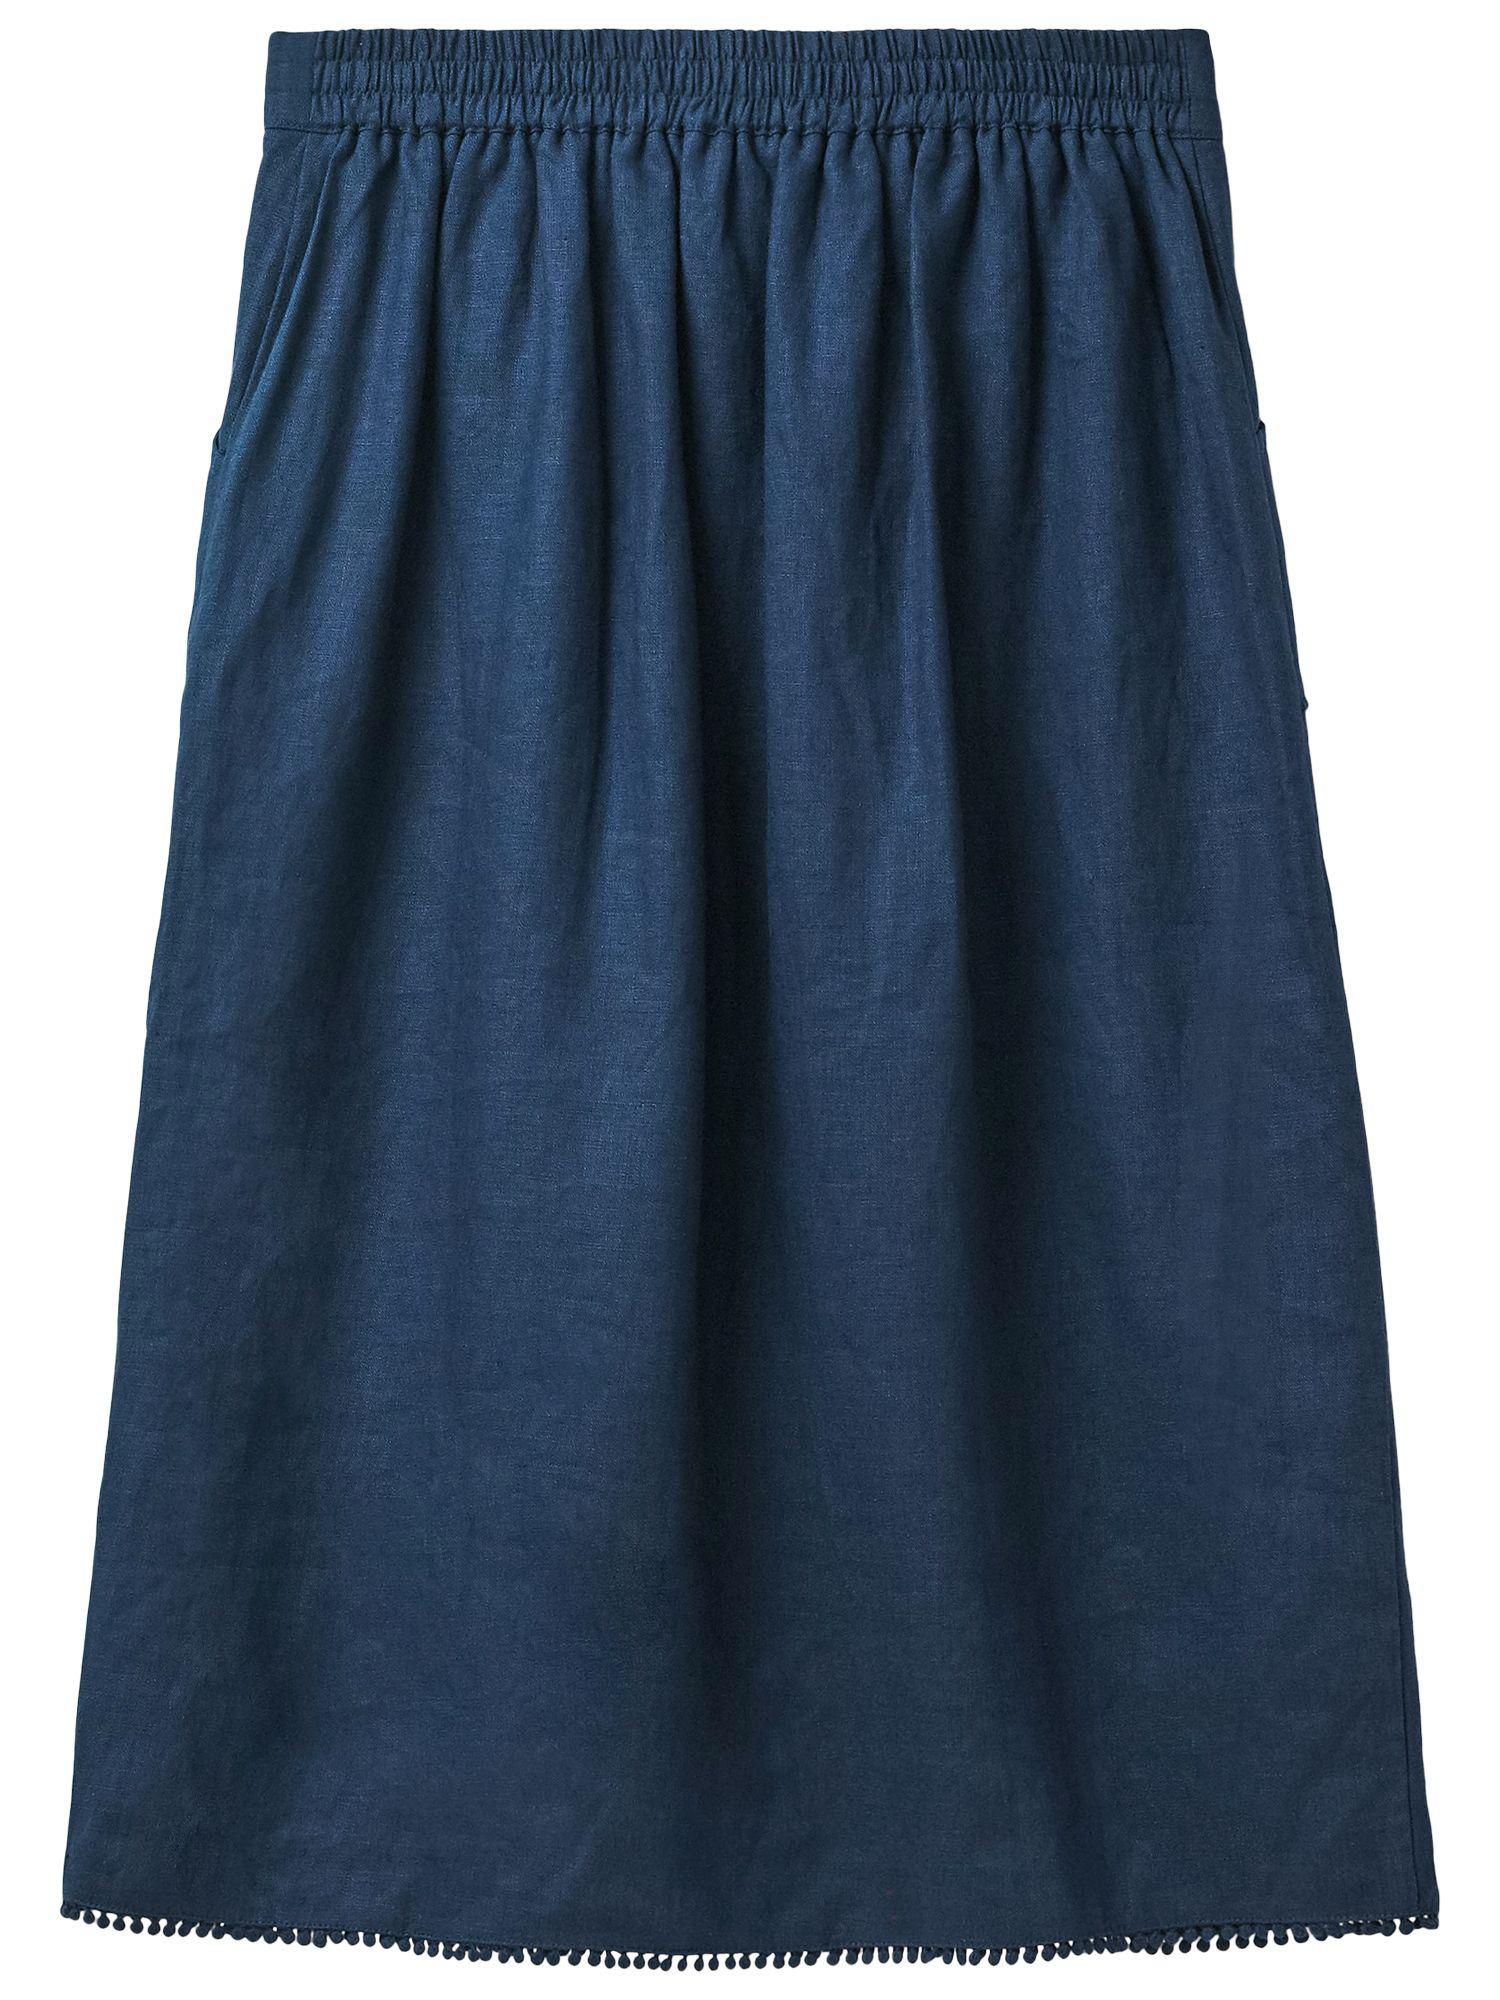 5cd04d04baf5 White Stuff Linen Portia Skirt in Blue - Lyst